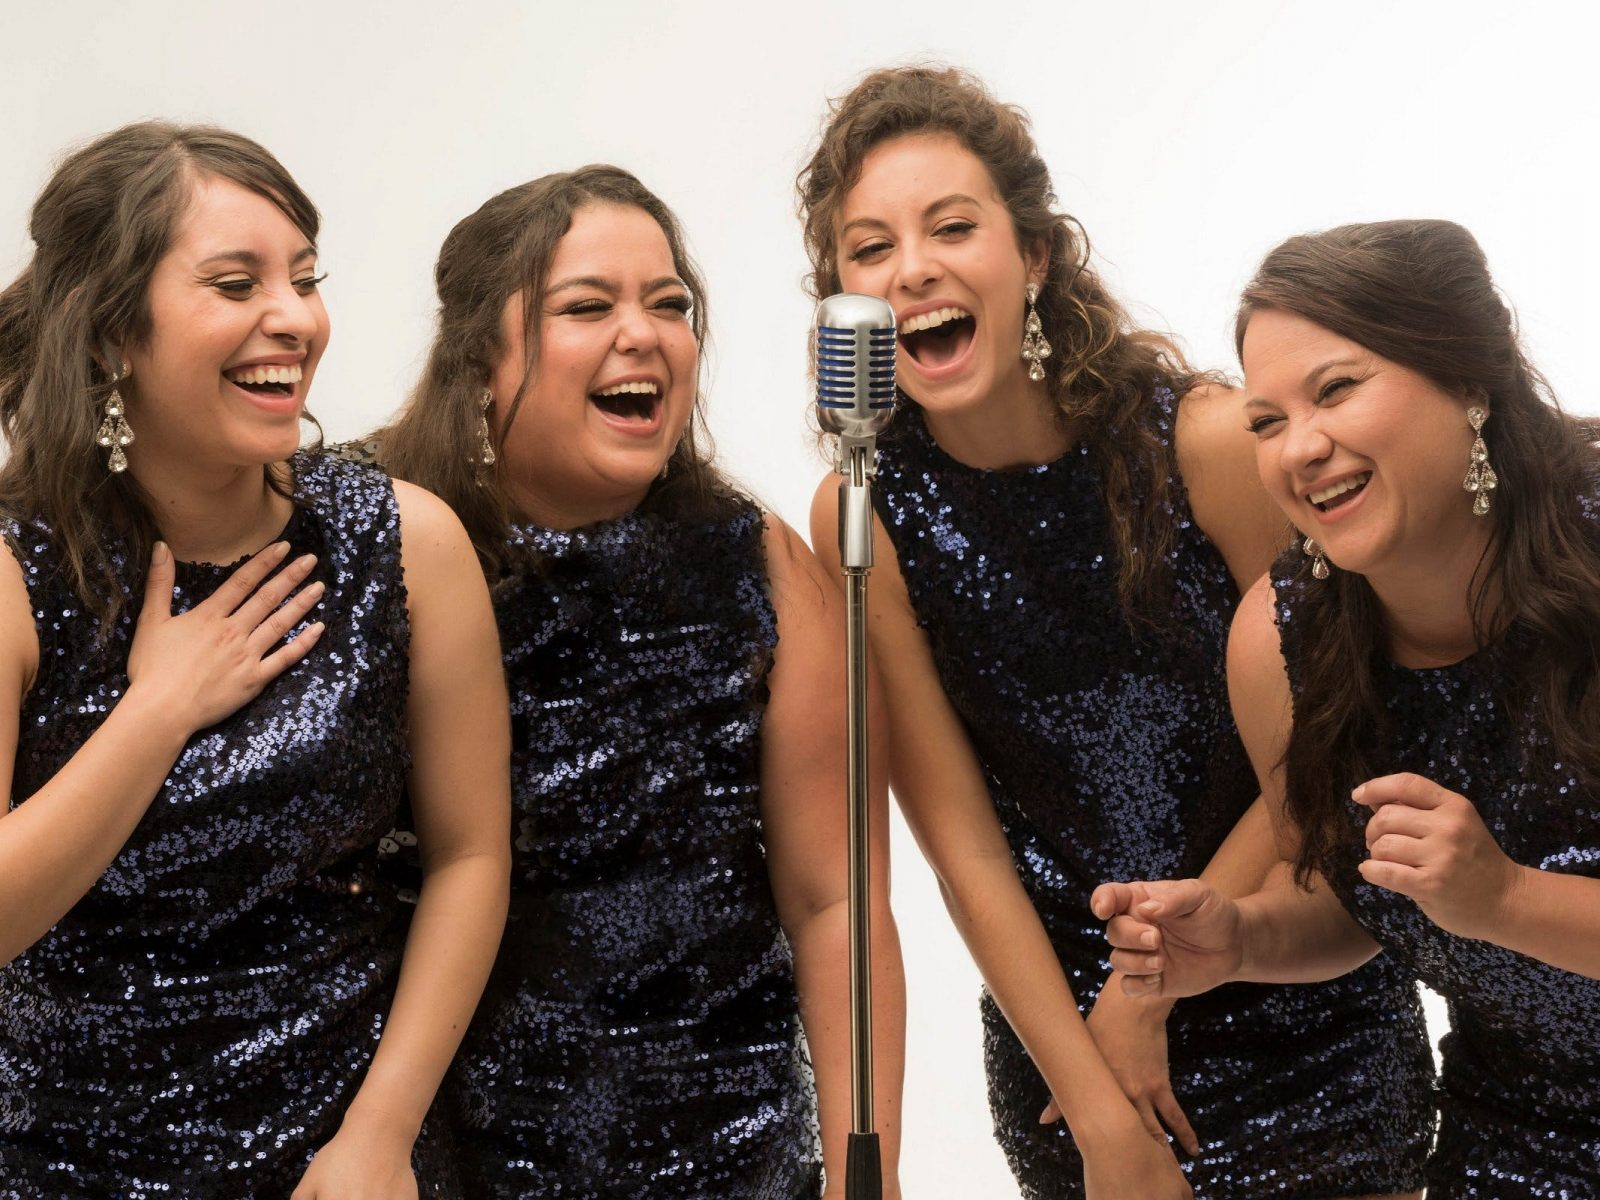 The Sapphires in sequins singing at microphone